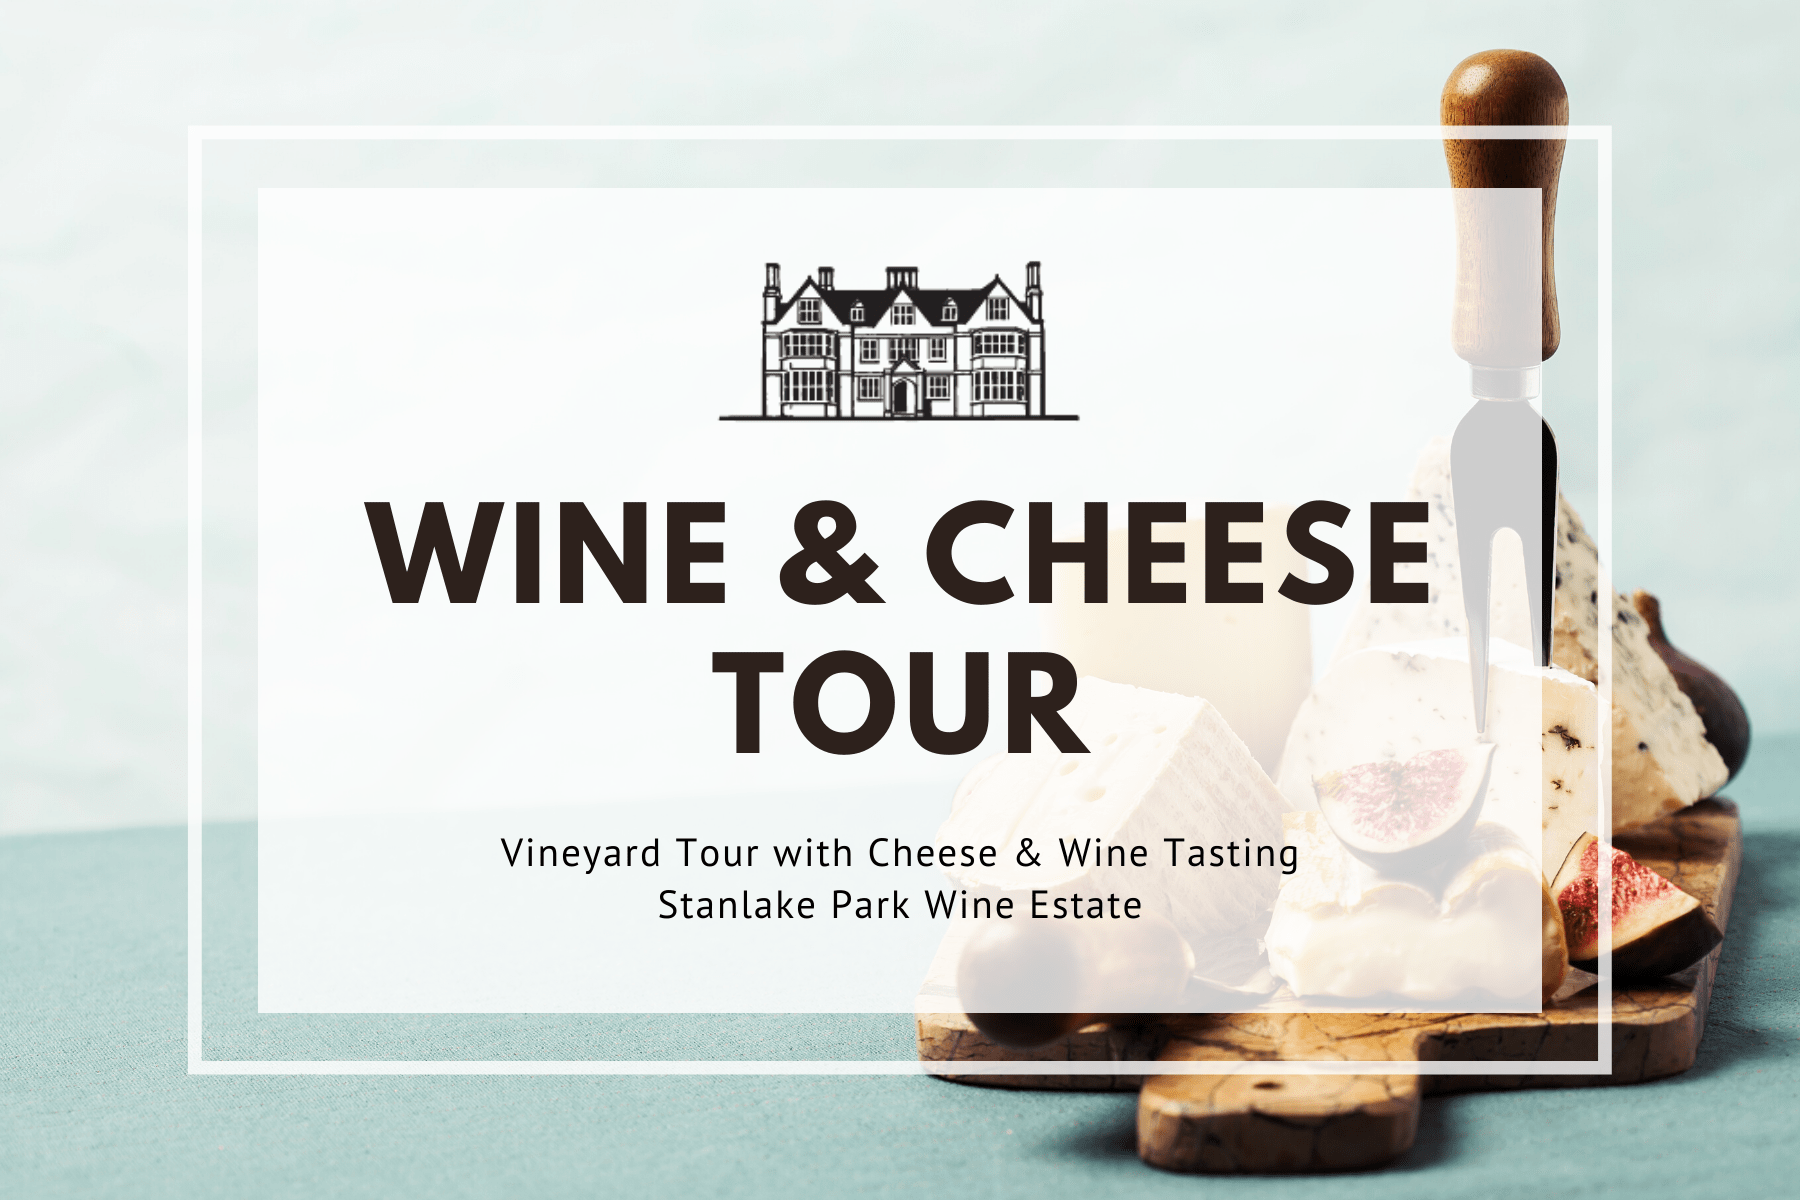 Sunday 12th September 2021 at 11 am - Wine & Cheese Tour